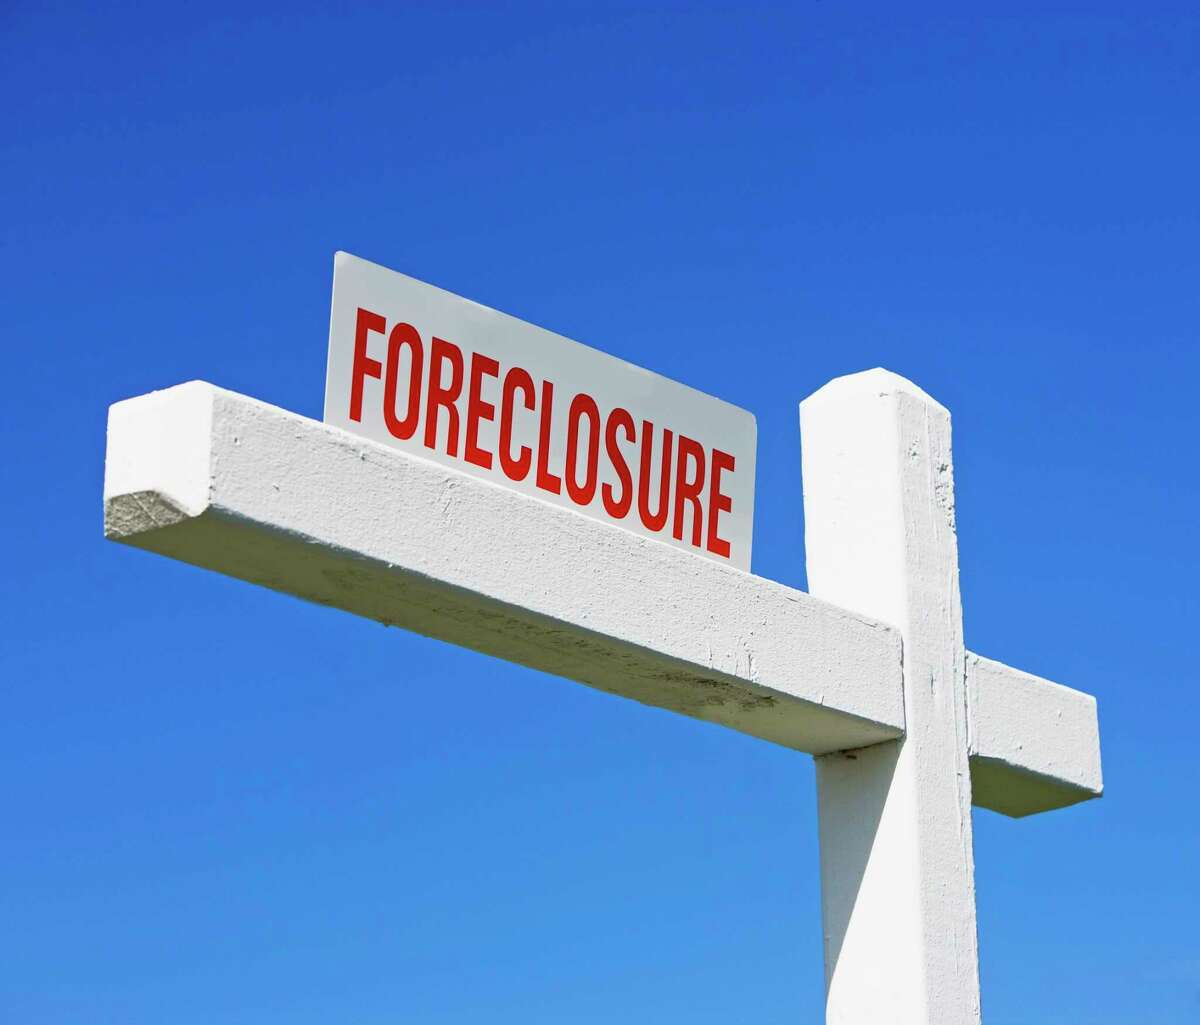 Northwest Michigan Community Action Agency is offering free foreclosure counseling. (Courtesy Photo/Getty Images)